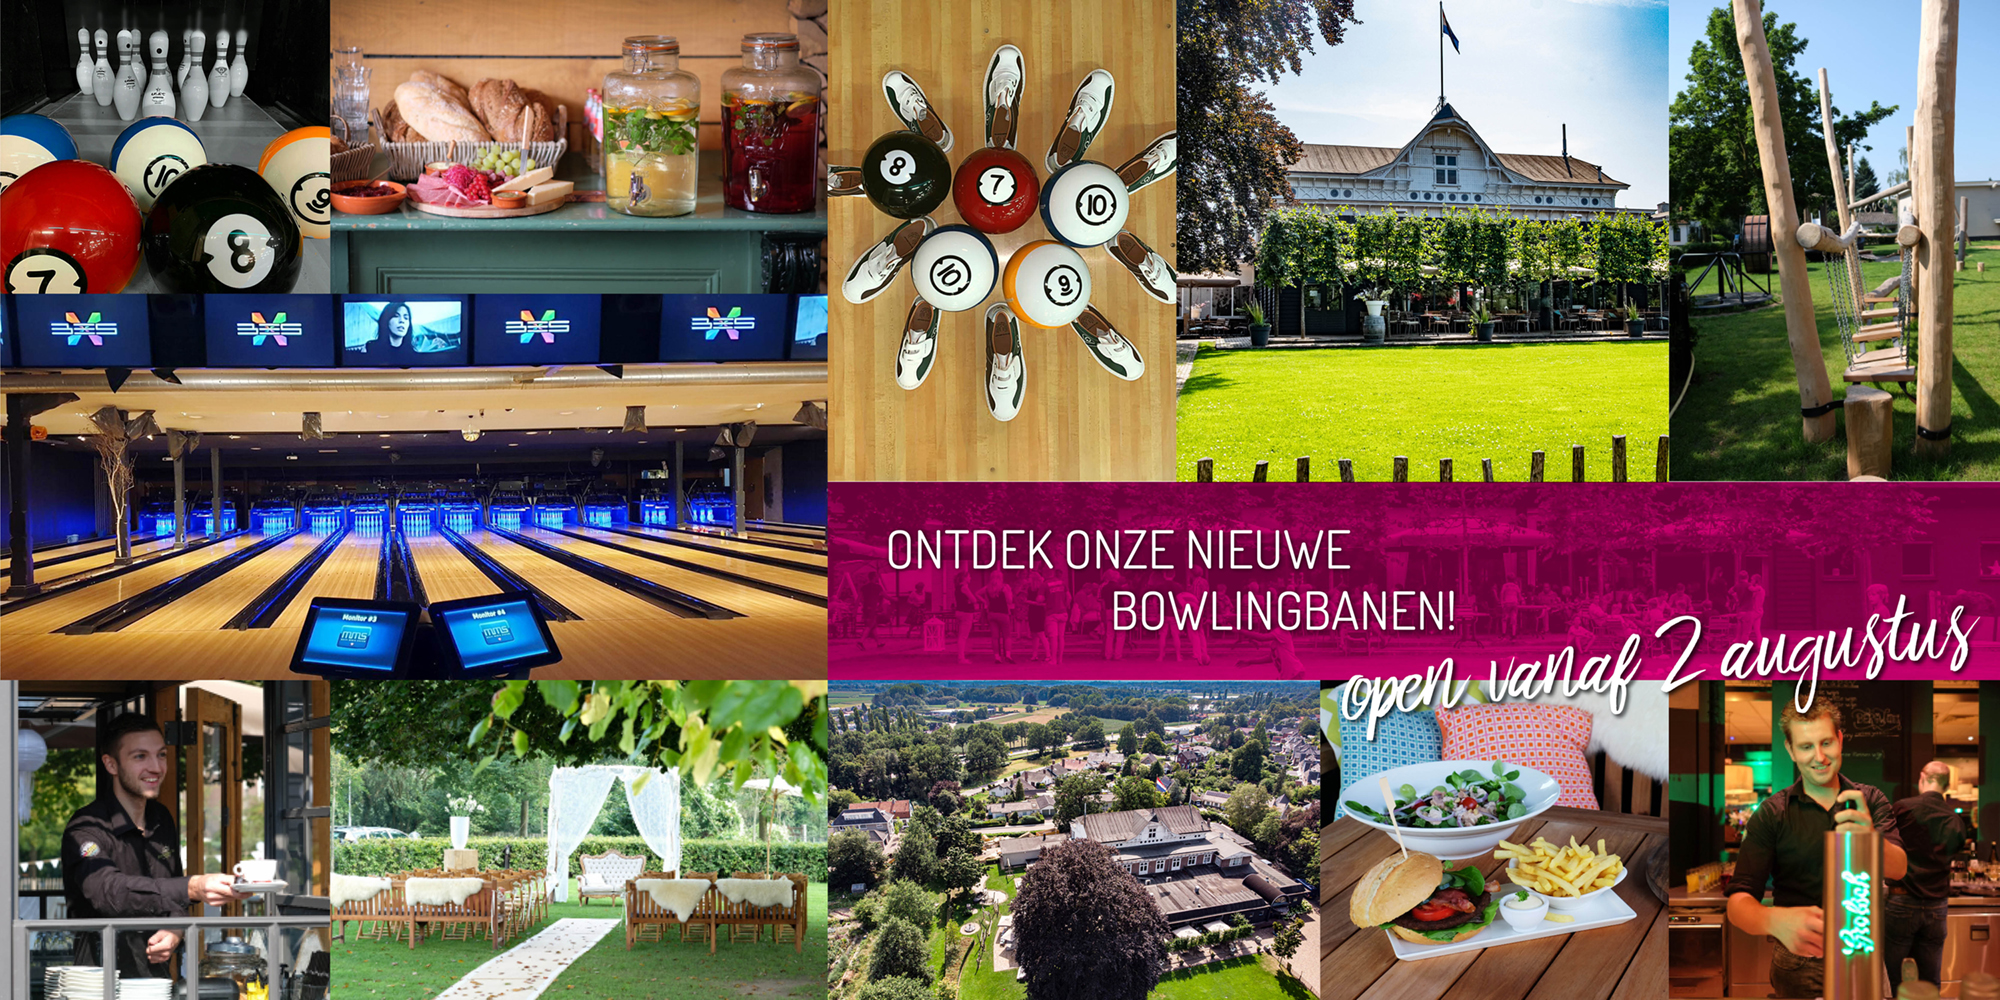 DeventerBuitensoos_Website_Header_bowlingbanenopen